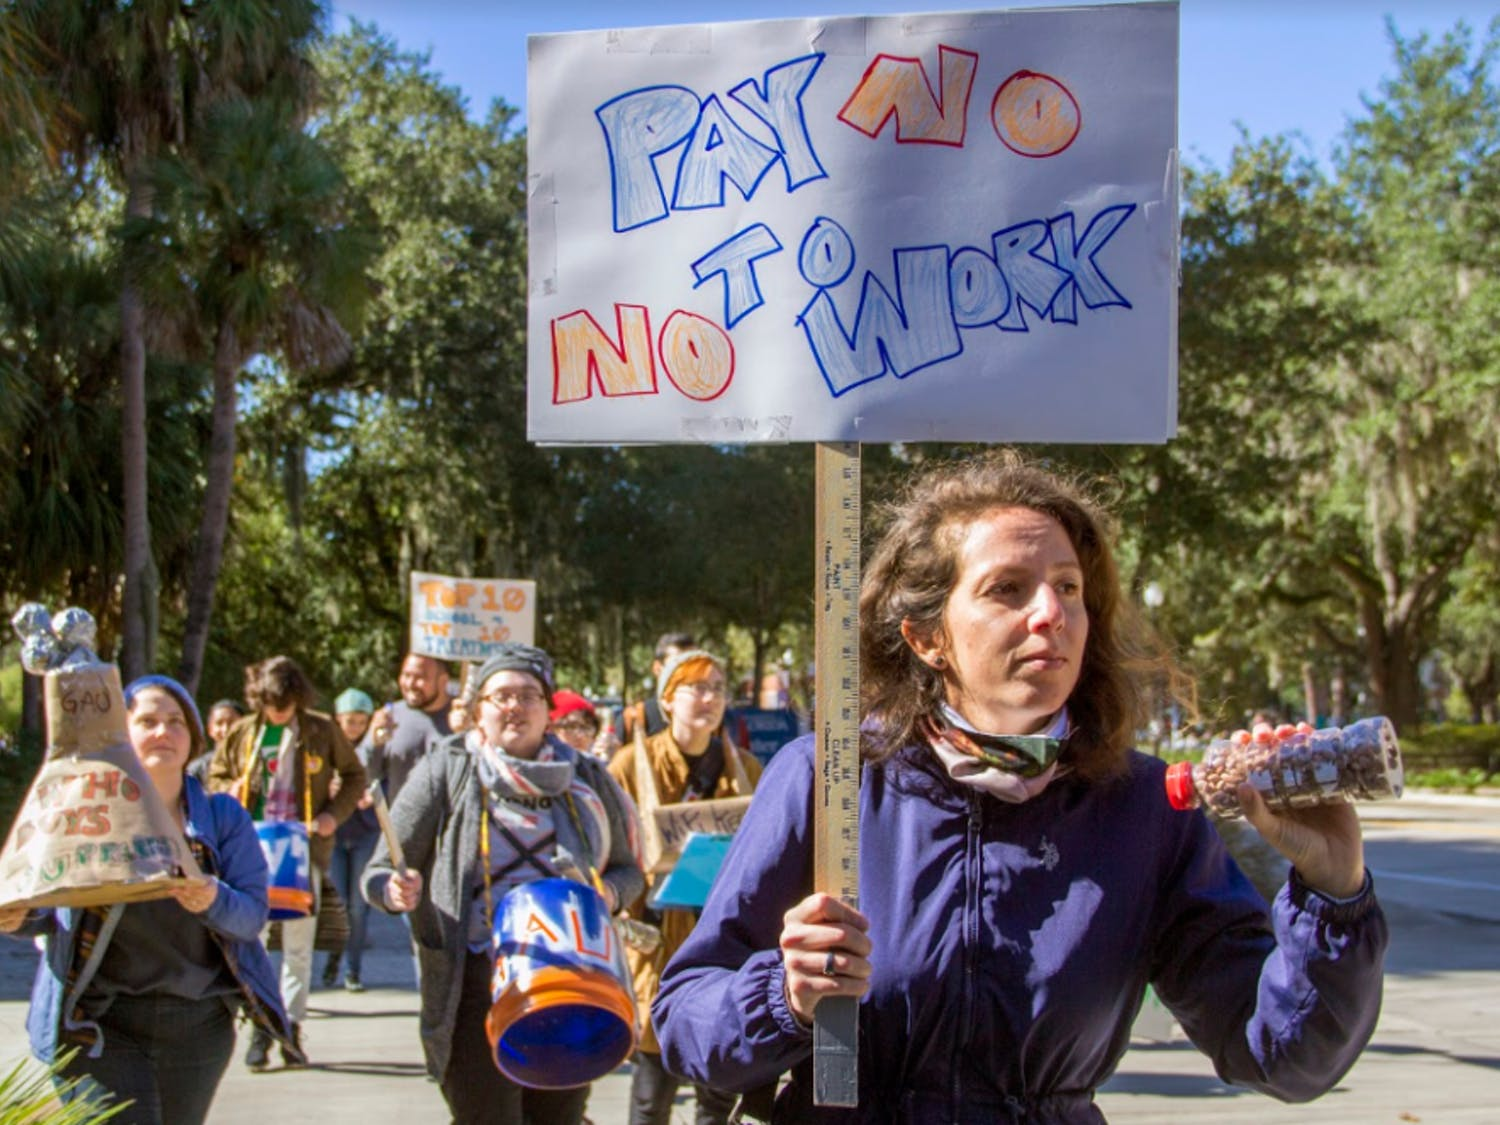 Shaking a bottle of peanuts, Paula Fernandez, a 31-year-old UF teaching assistant, protests fees for employees of the university